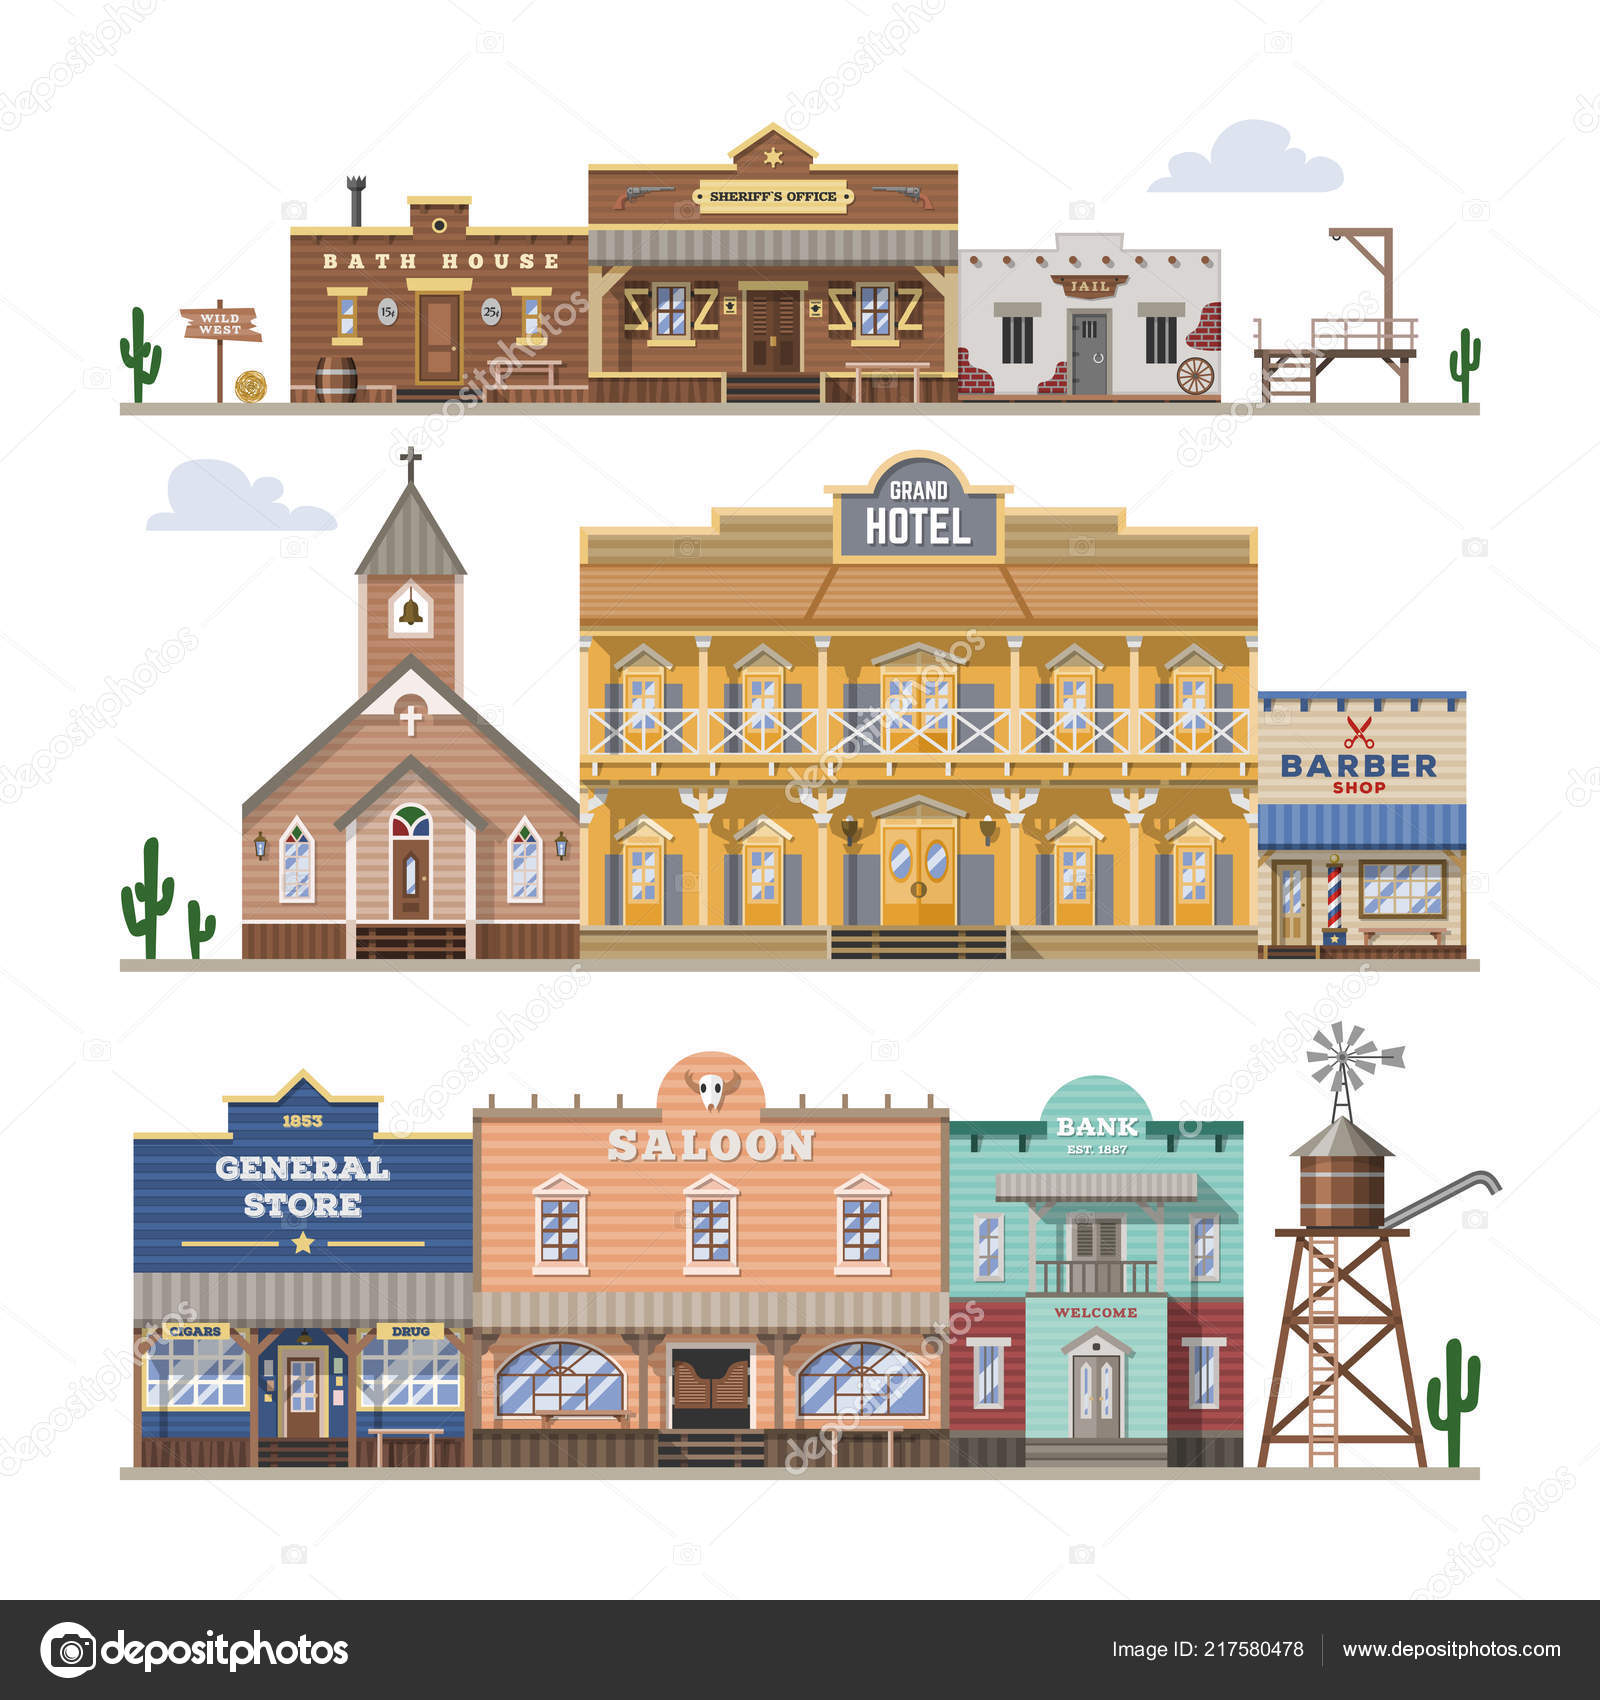 saloon vector wild west building and western cowboys house or bar in